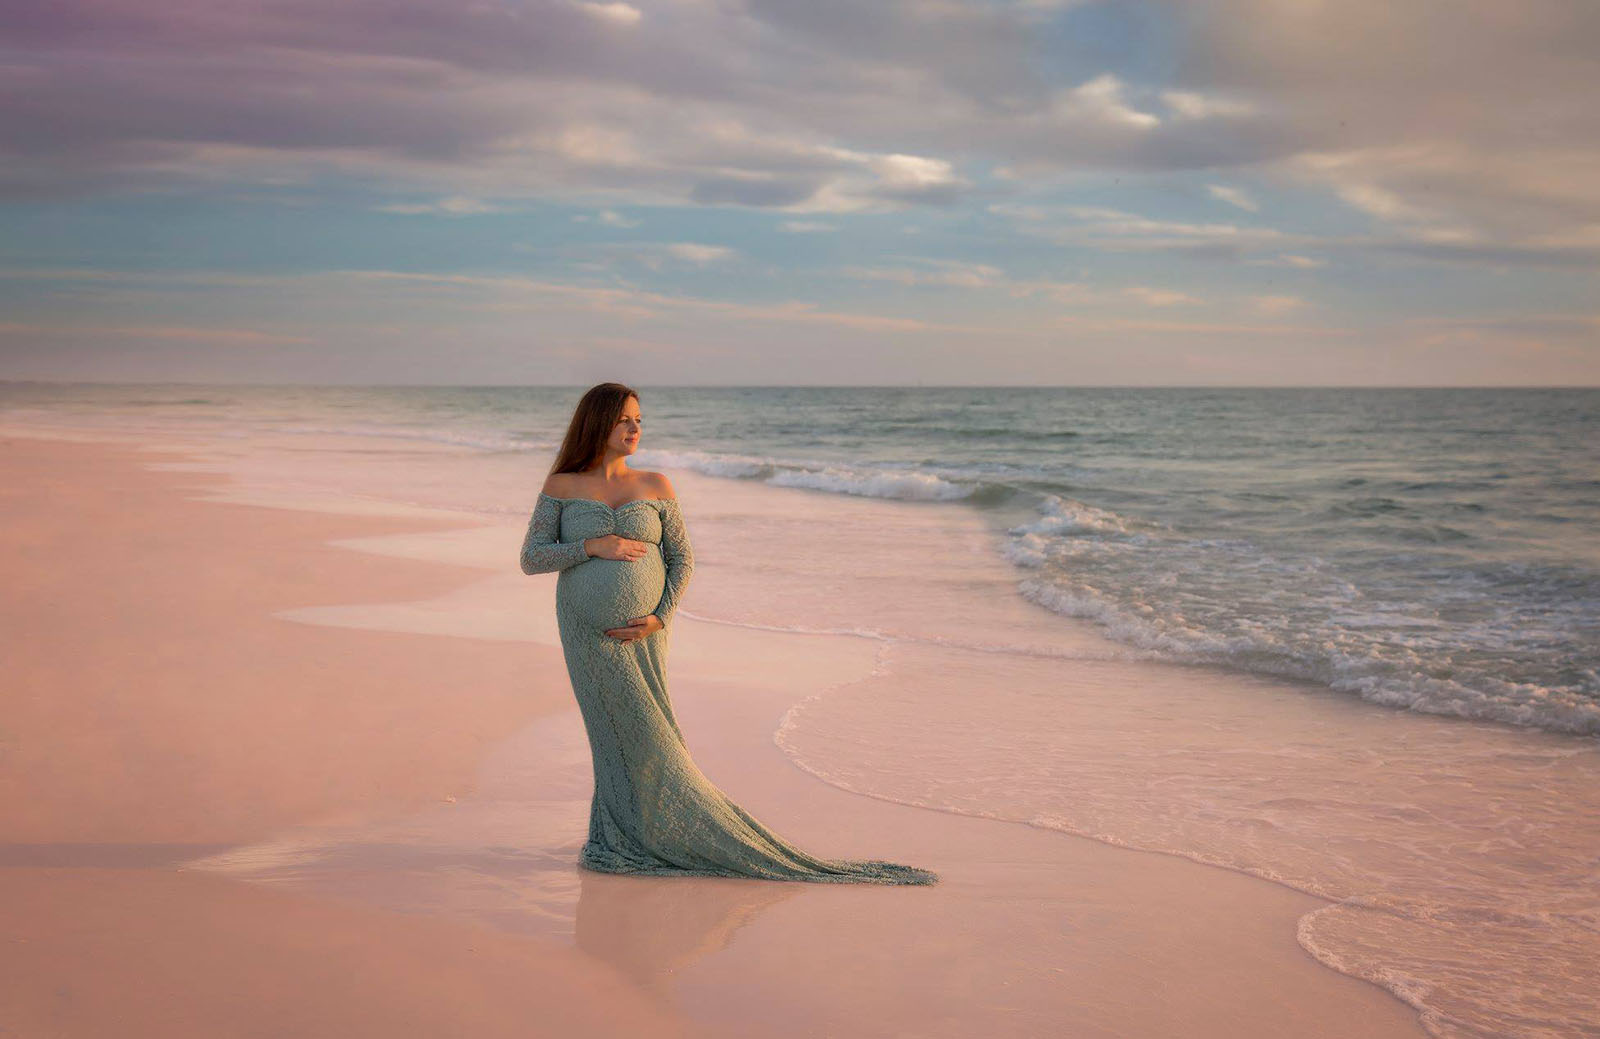 One place that I always struggled taking photos of my daughter and clients was the beach. Sure, it's easier to get great photos if you're shooting at sunset but with little ones and bed times we know that's not always an option.